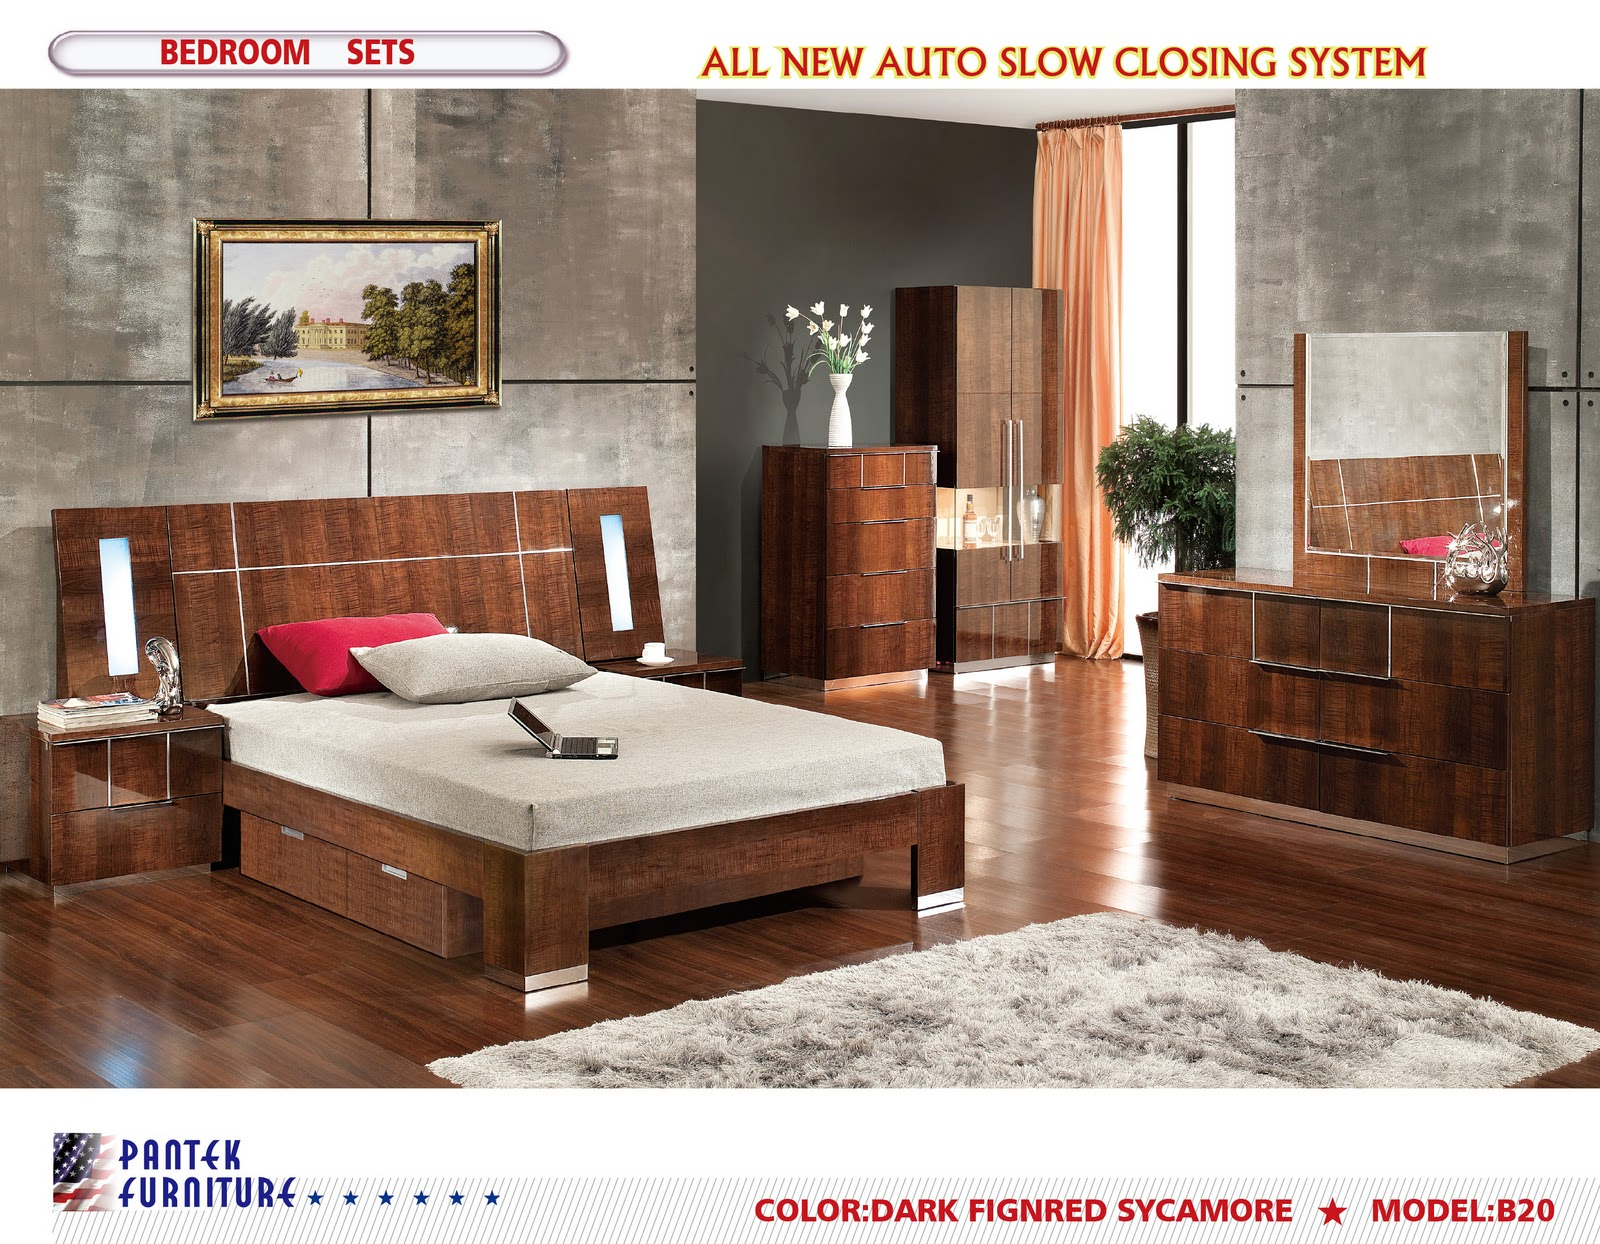 Pantek furniture b20 modern bedroom set royal for Furniture outlet